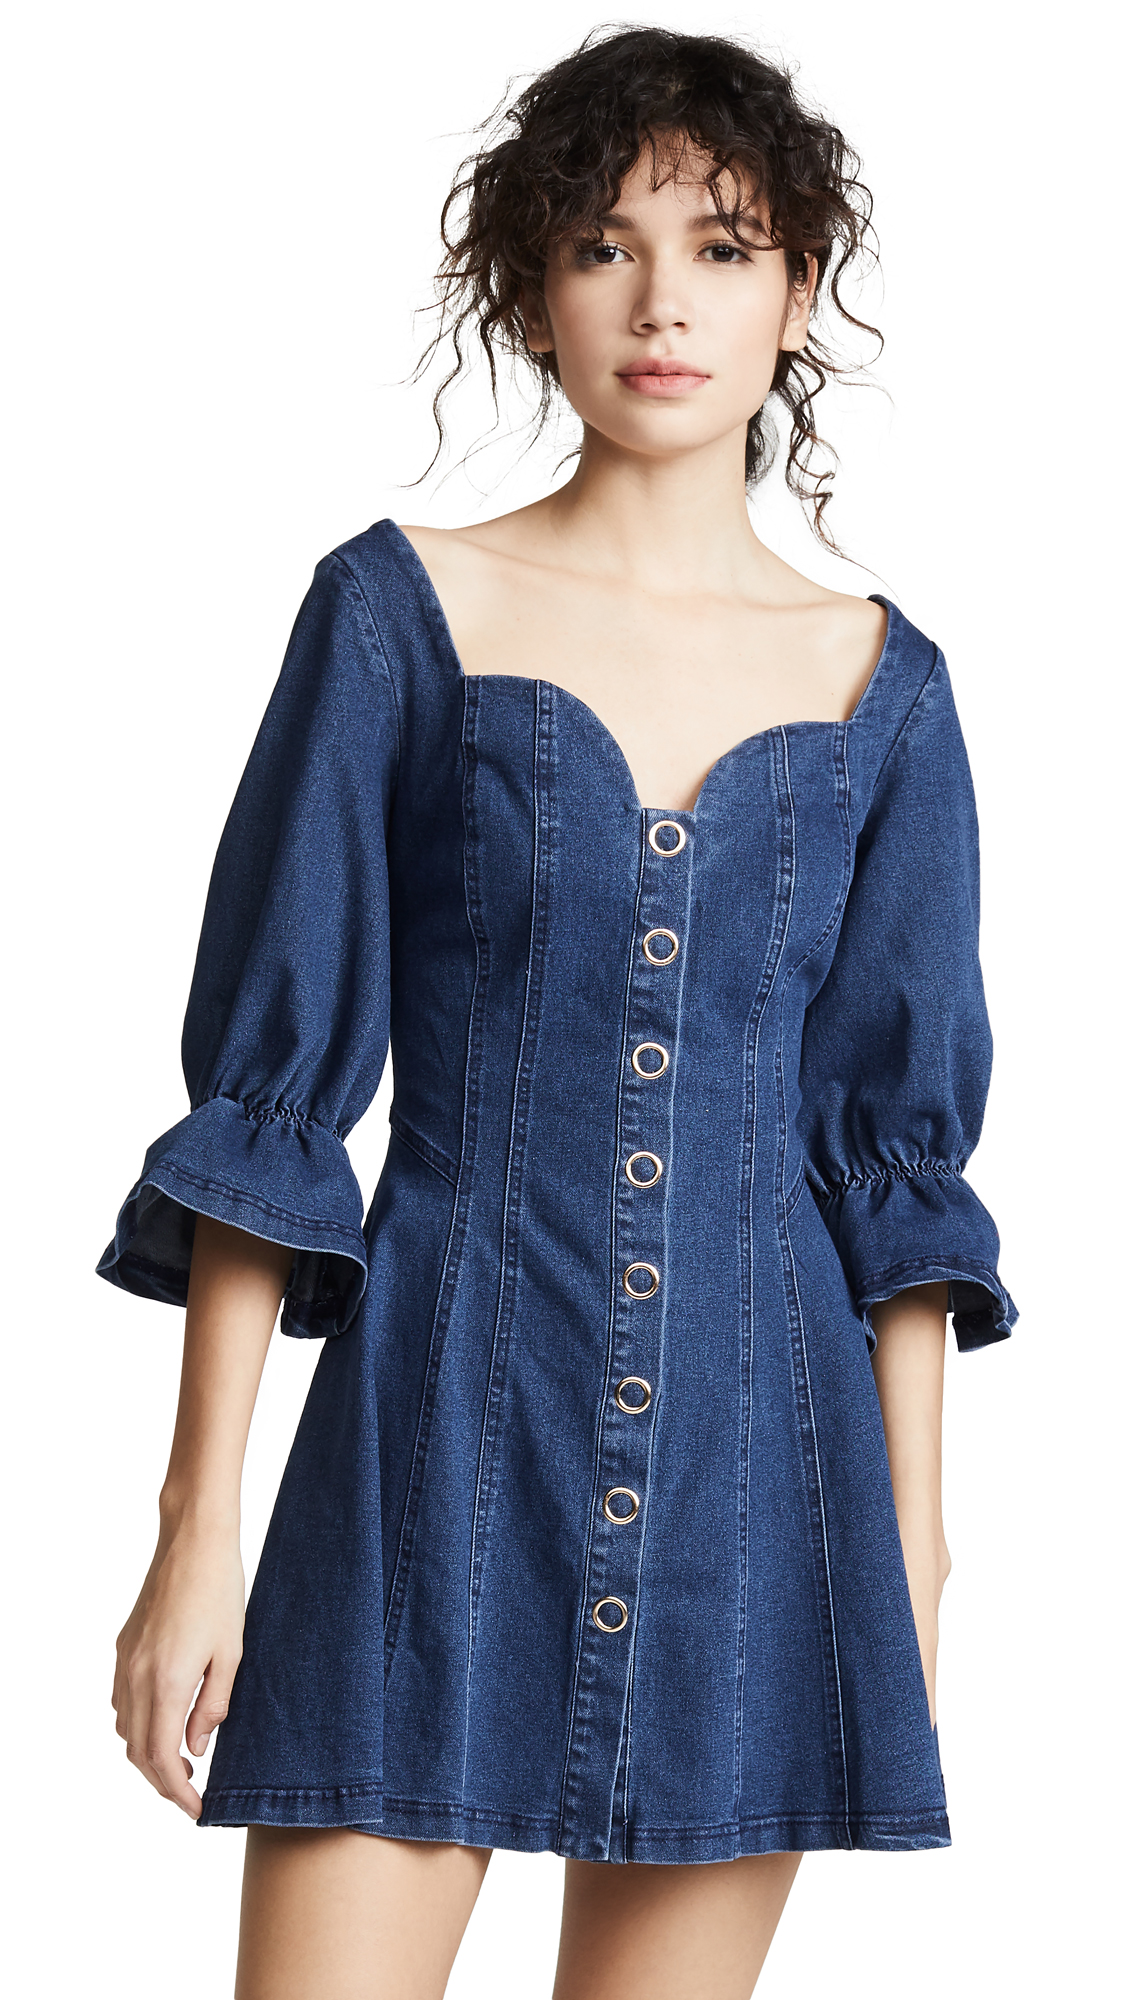 findersKEEPERS Deja Vu Mini Dress - Indigo